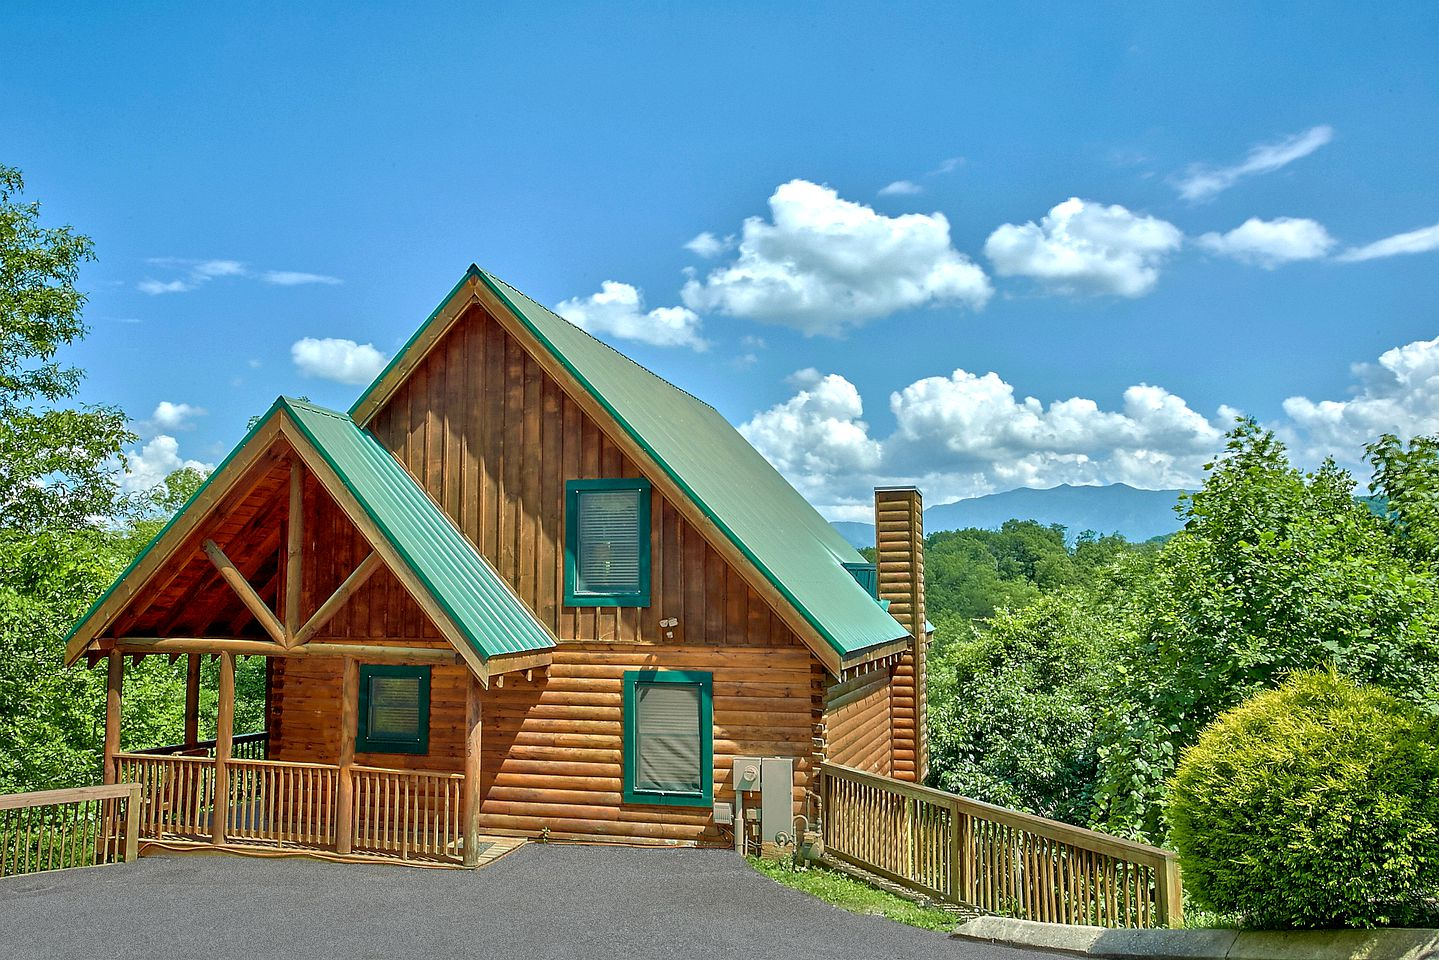 This Pigeon Forge vacation cabin is ideal for weekend getaways in Tennessee